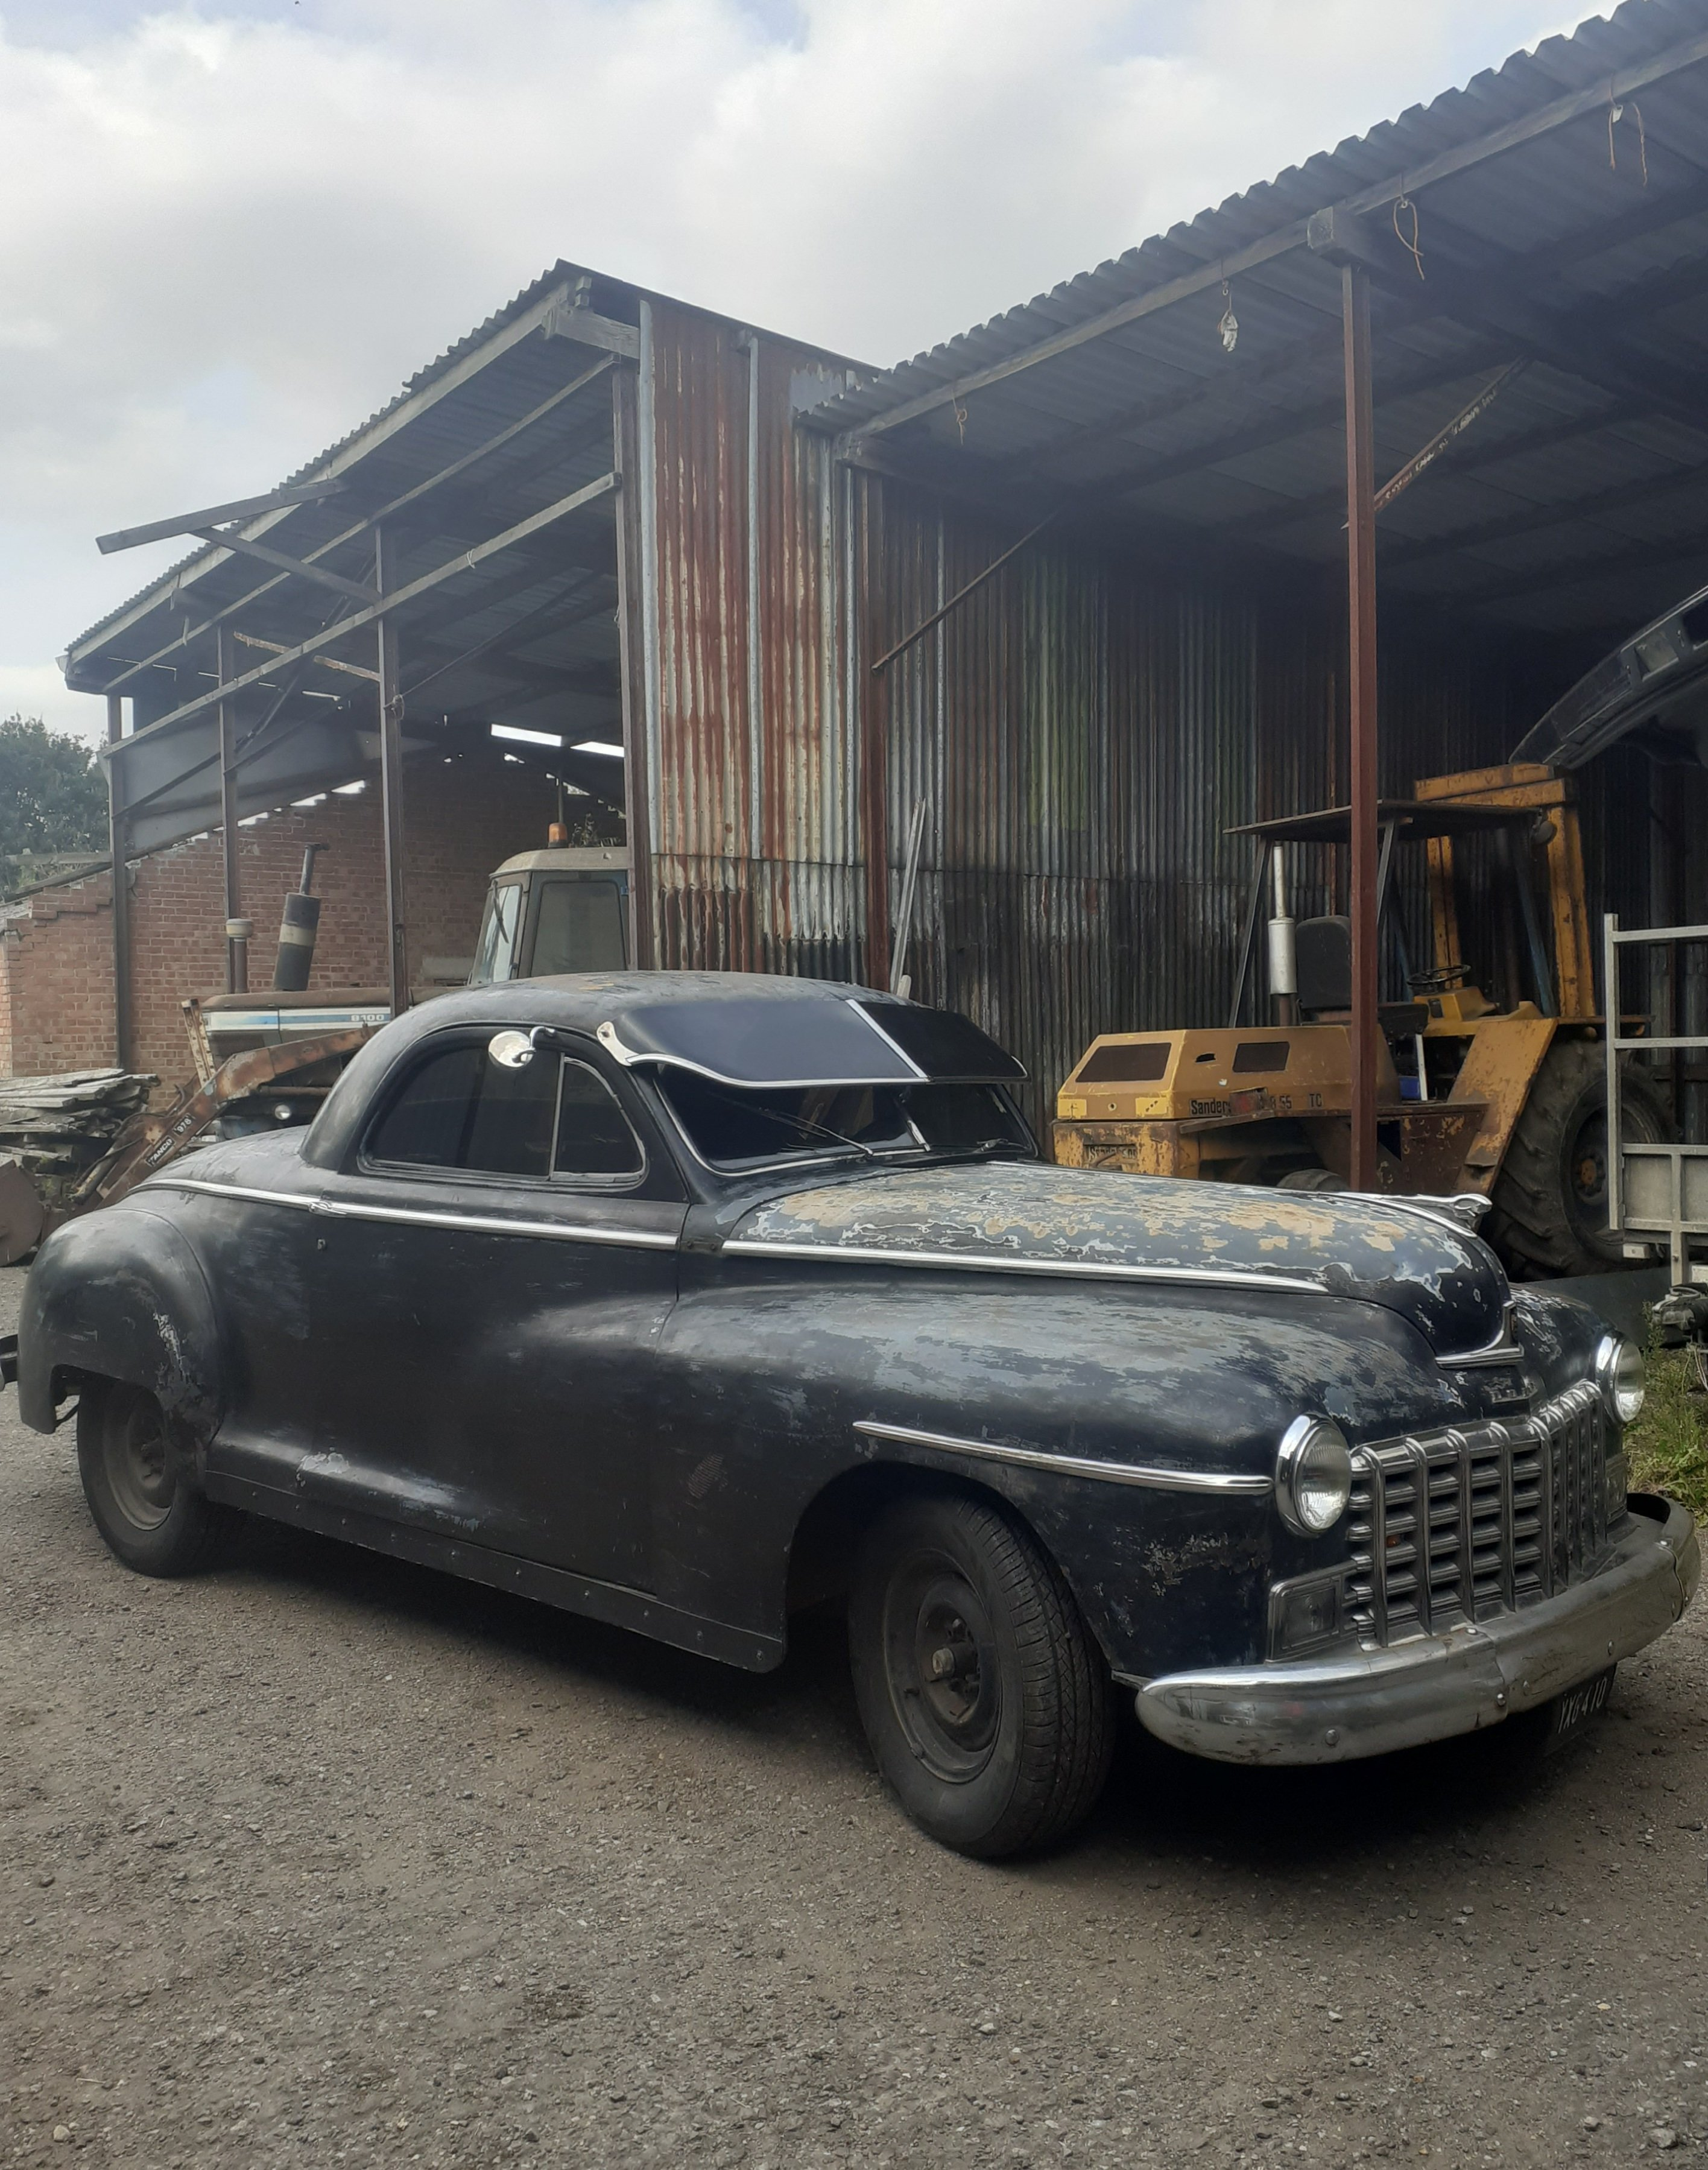 1947 Dodge business coupe For Sale (picture 1 of 3)